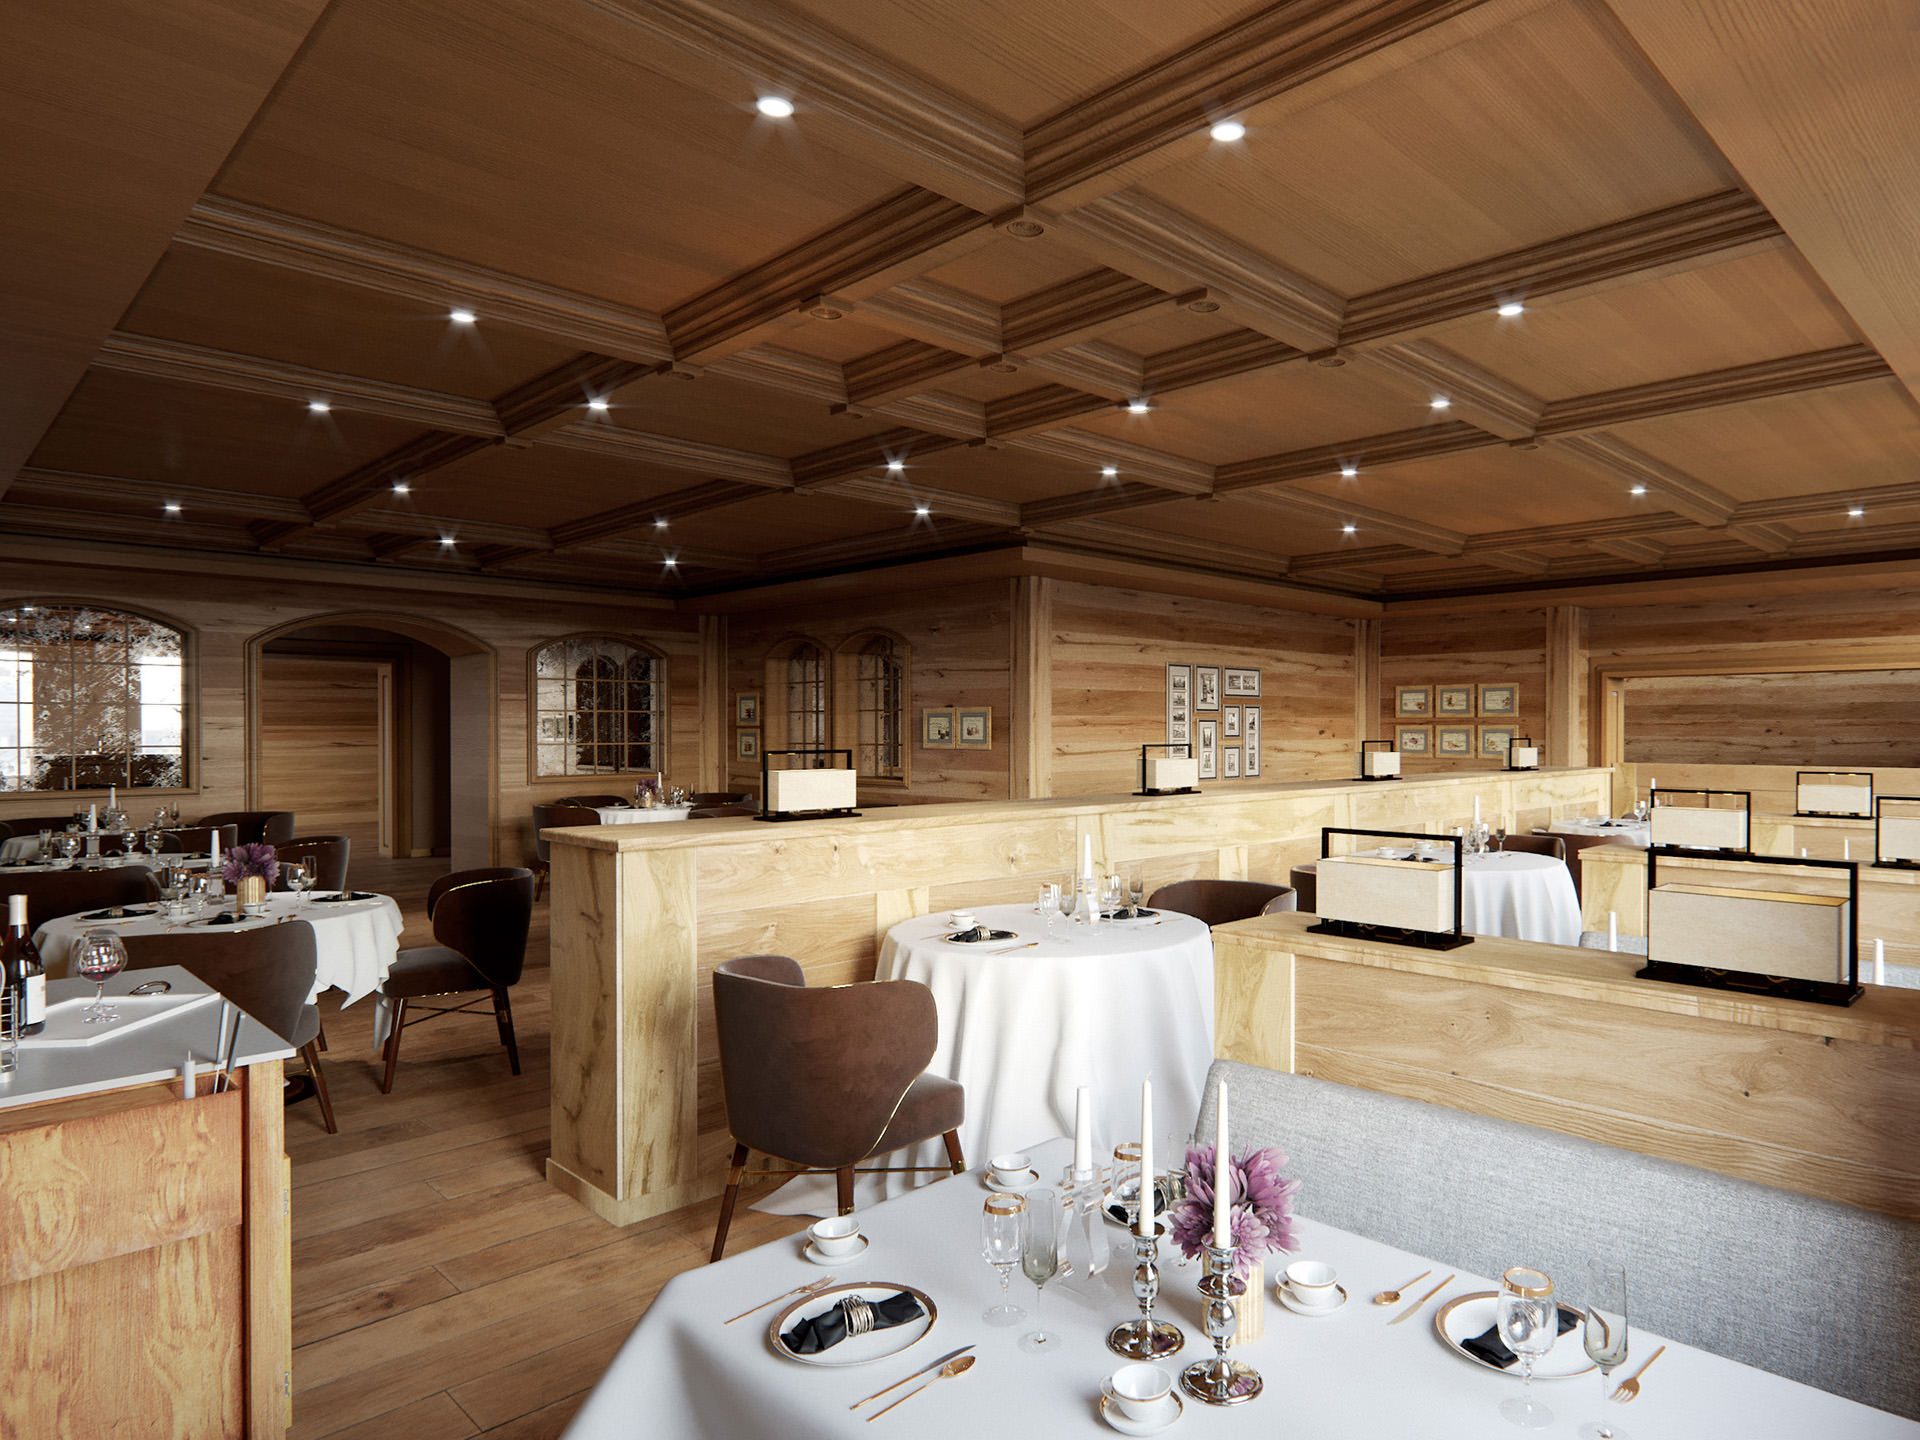 3D-interior-visualization-Mont-Cervin-restaurant-wood